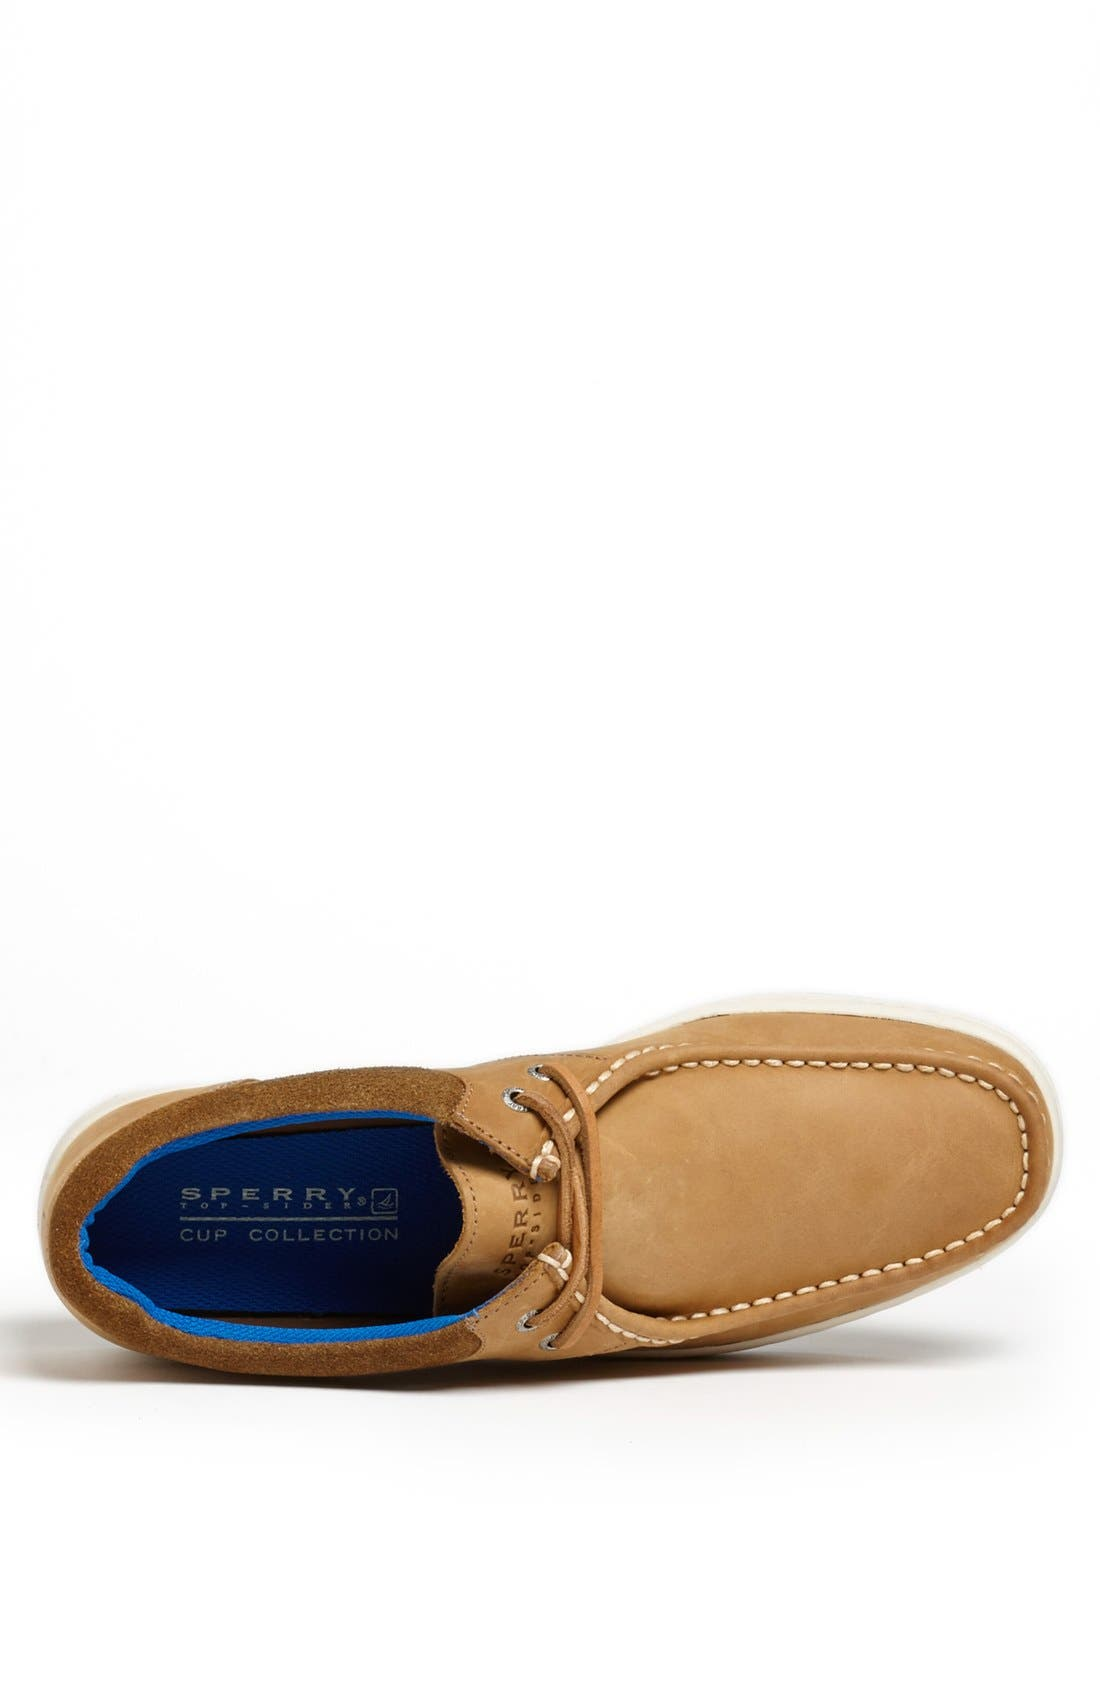 Alternate Image 3  - Sperry Top-Sider® 'Sperry Cup' Chukka Boot